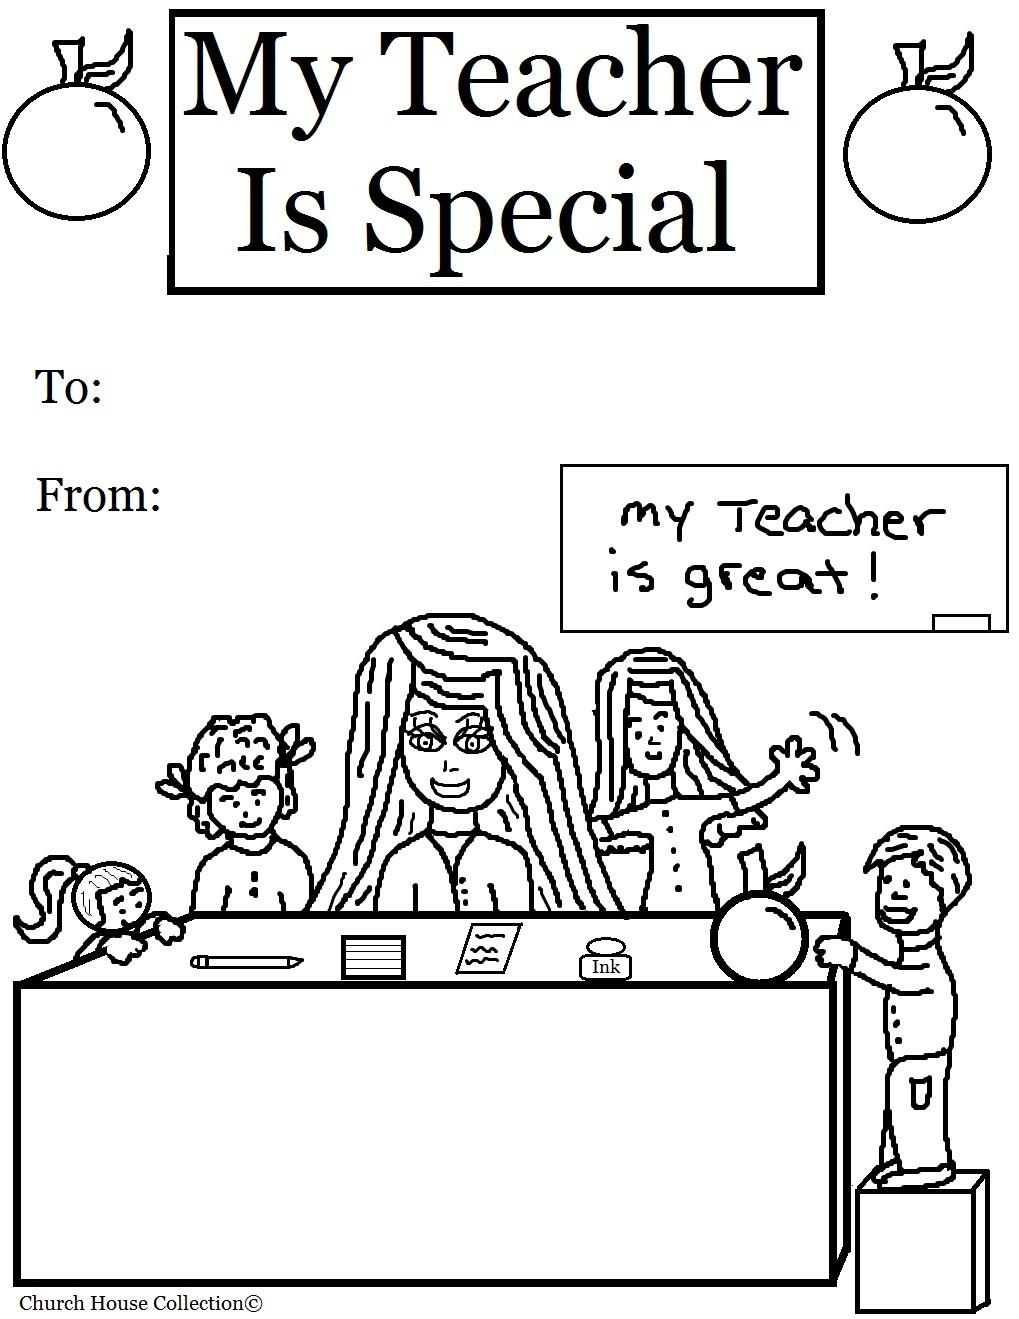 coloring pages of teachers - photo#11